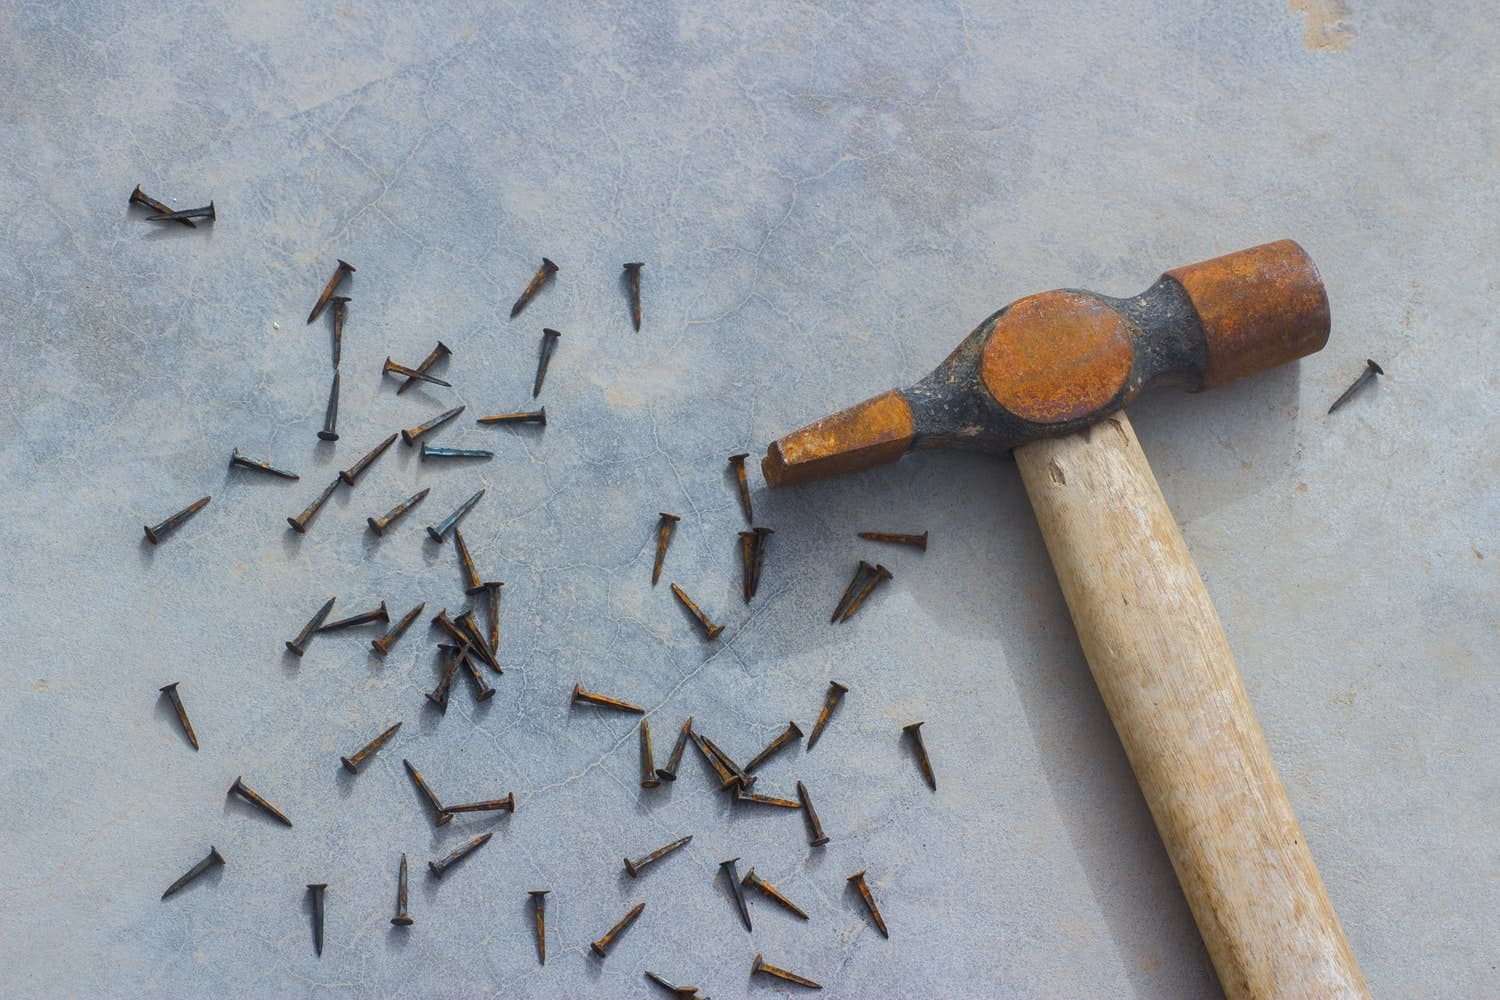 29 Different Types Of Construction Nails Plus More